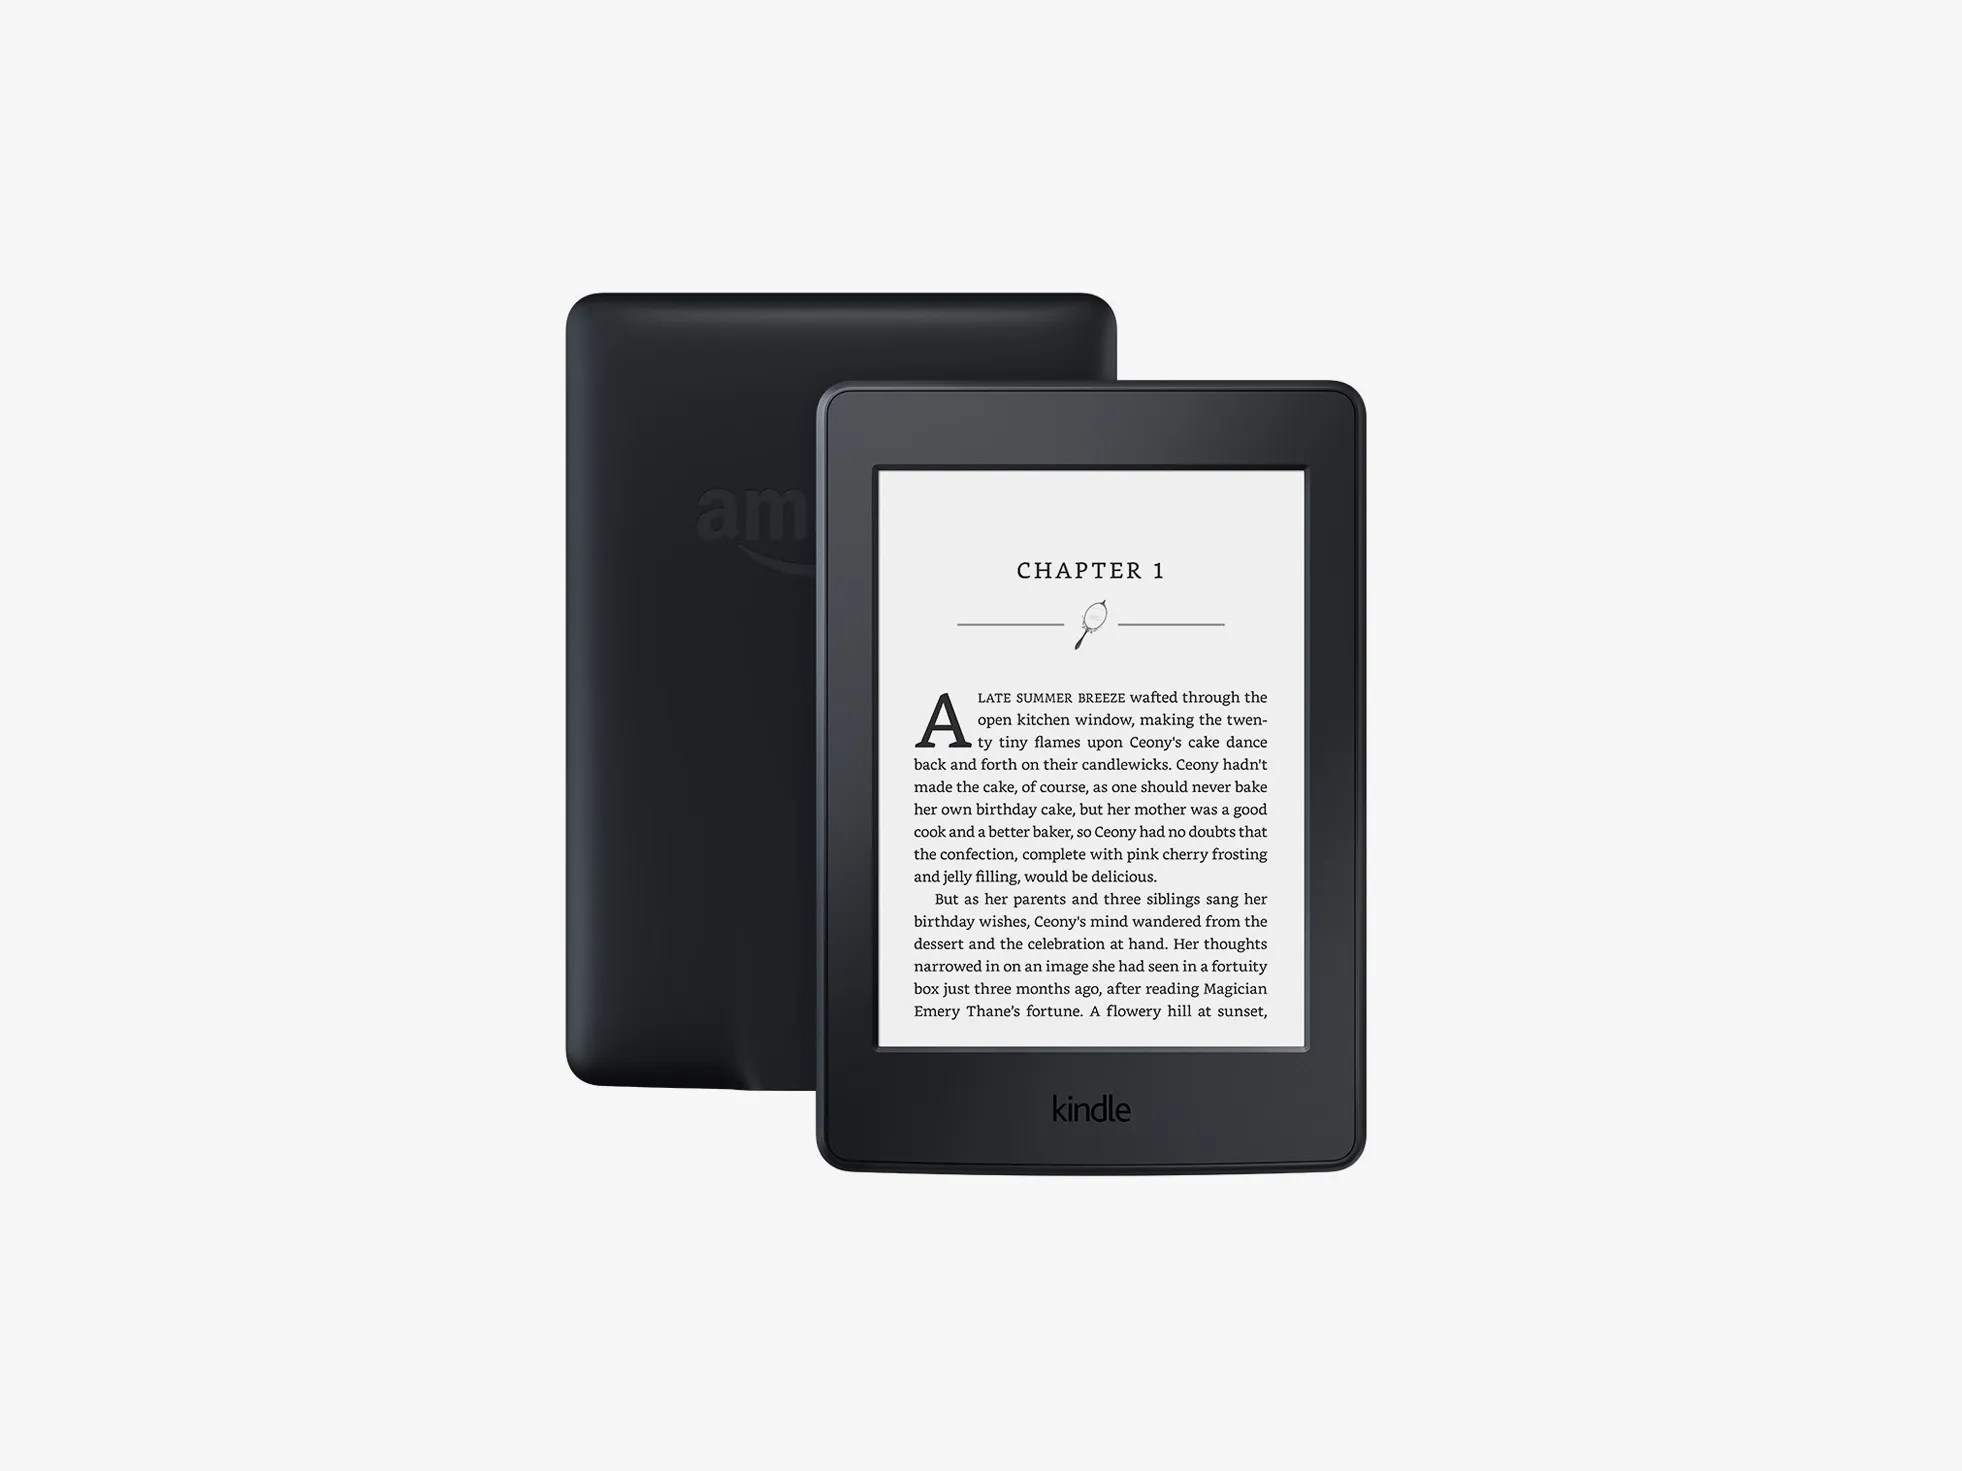 Kindle Paperwhite Formate â Test Kindle Paperwhite 2018 â E Reader Mit Audible Und Ipx8